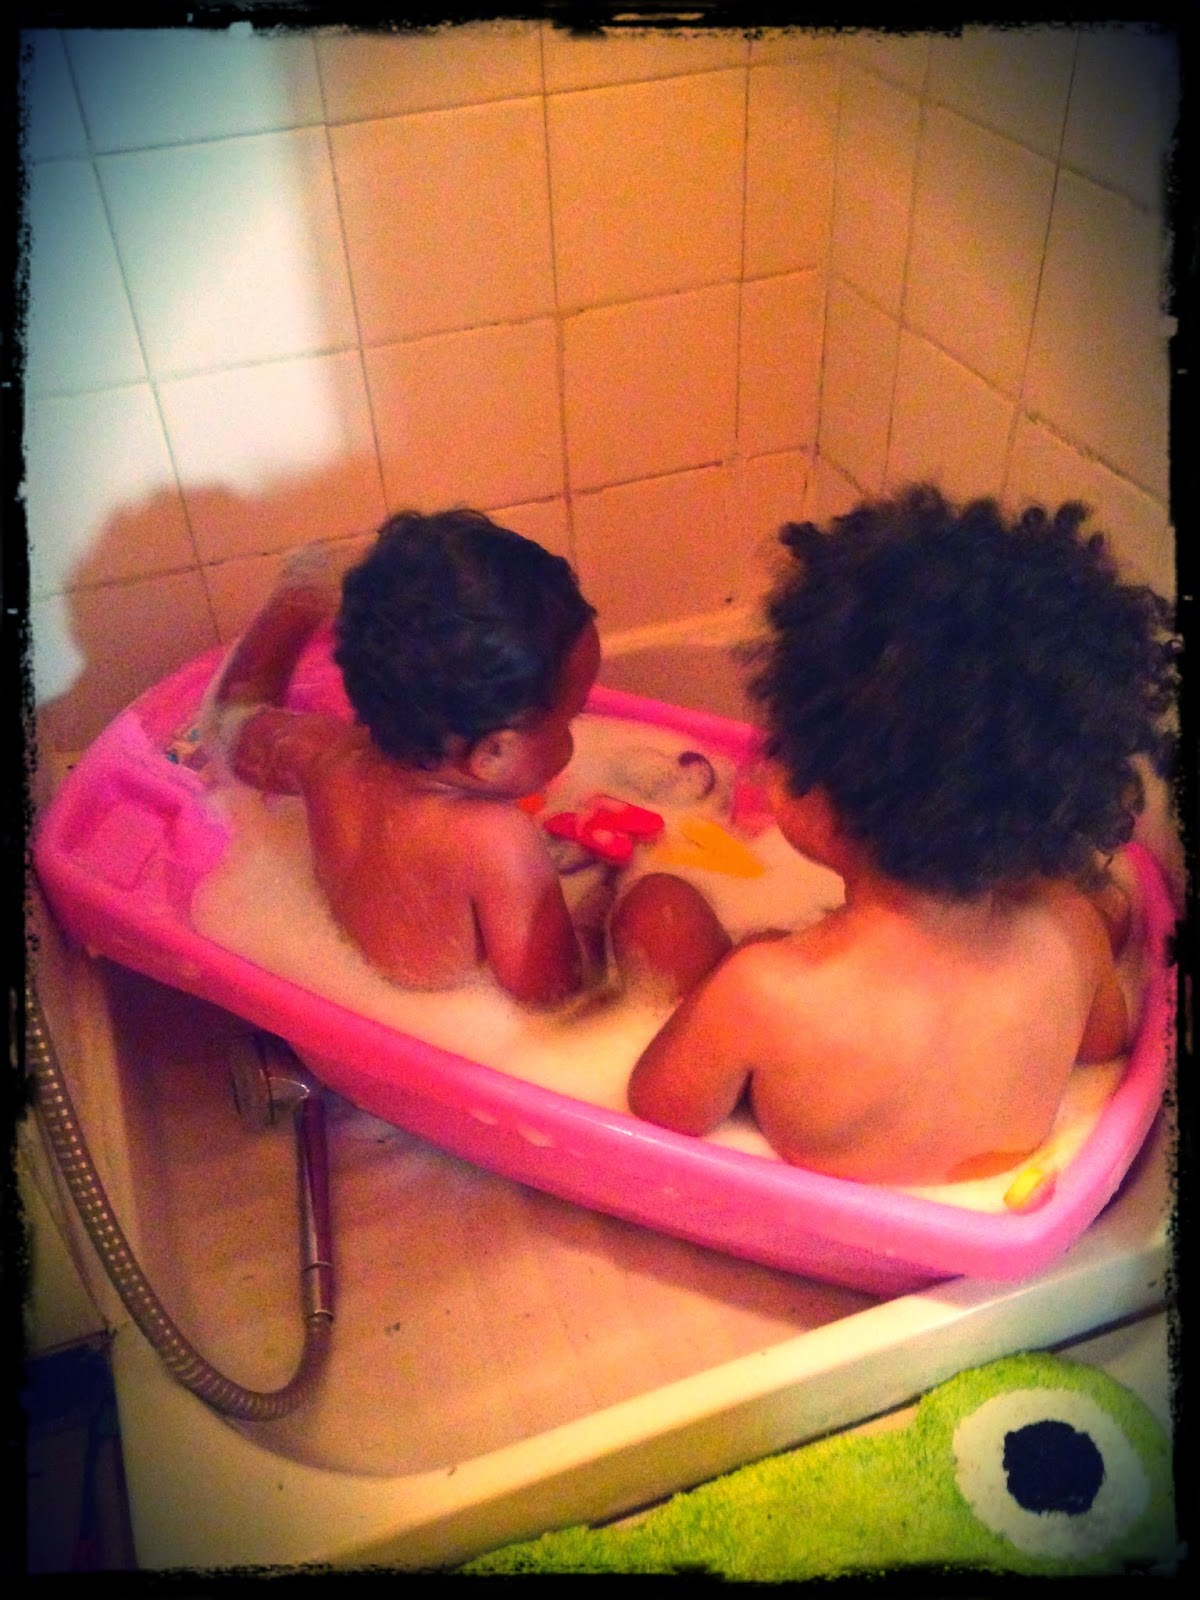 Infant tub for two toddlers? At least they get clean!